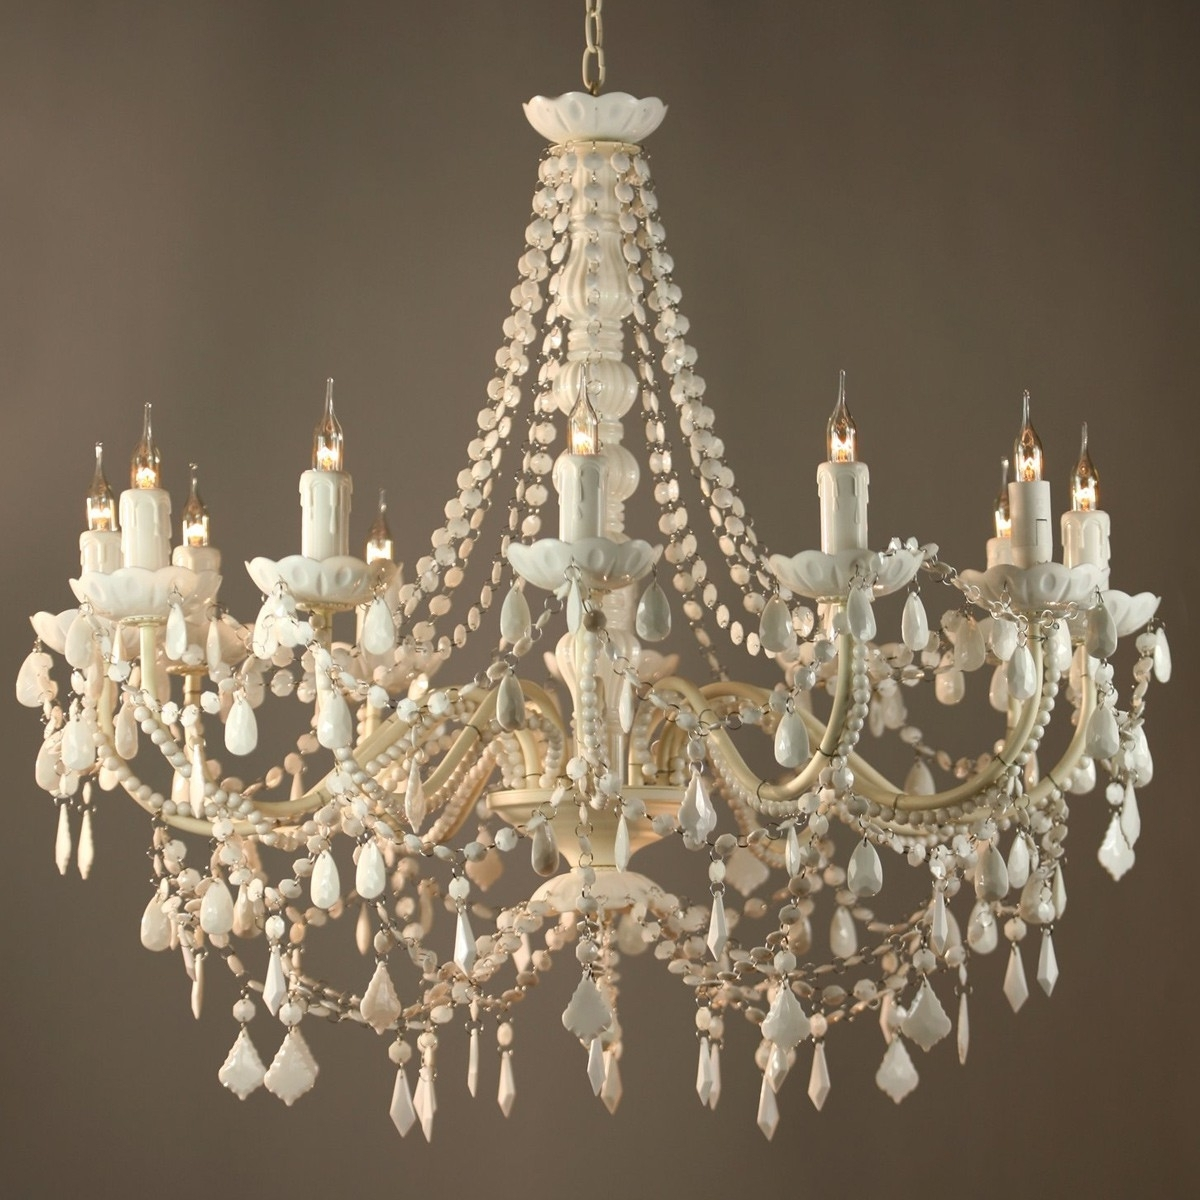 Vintage Style Chandeliers (View 19 of 20)